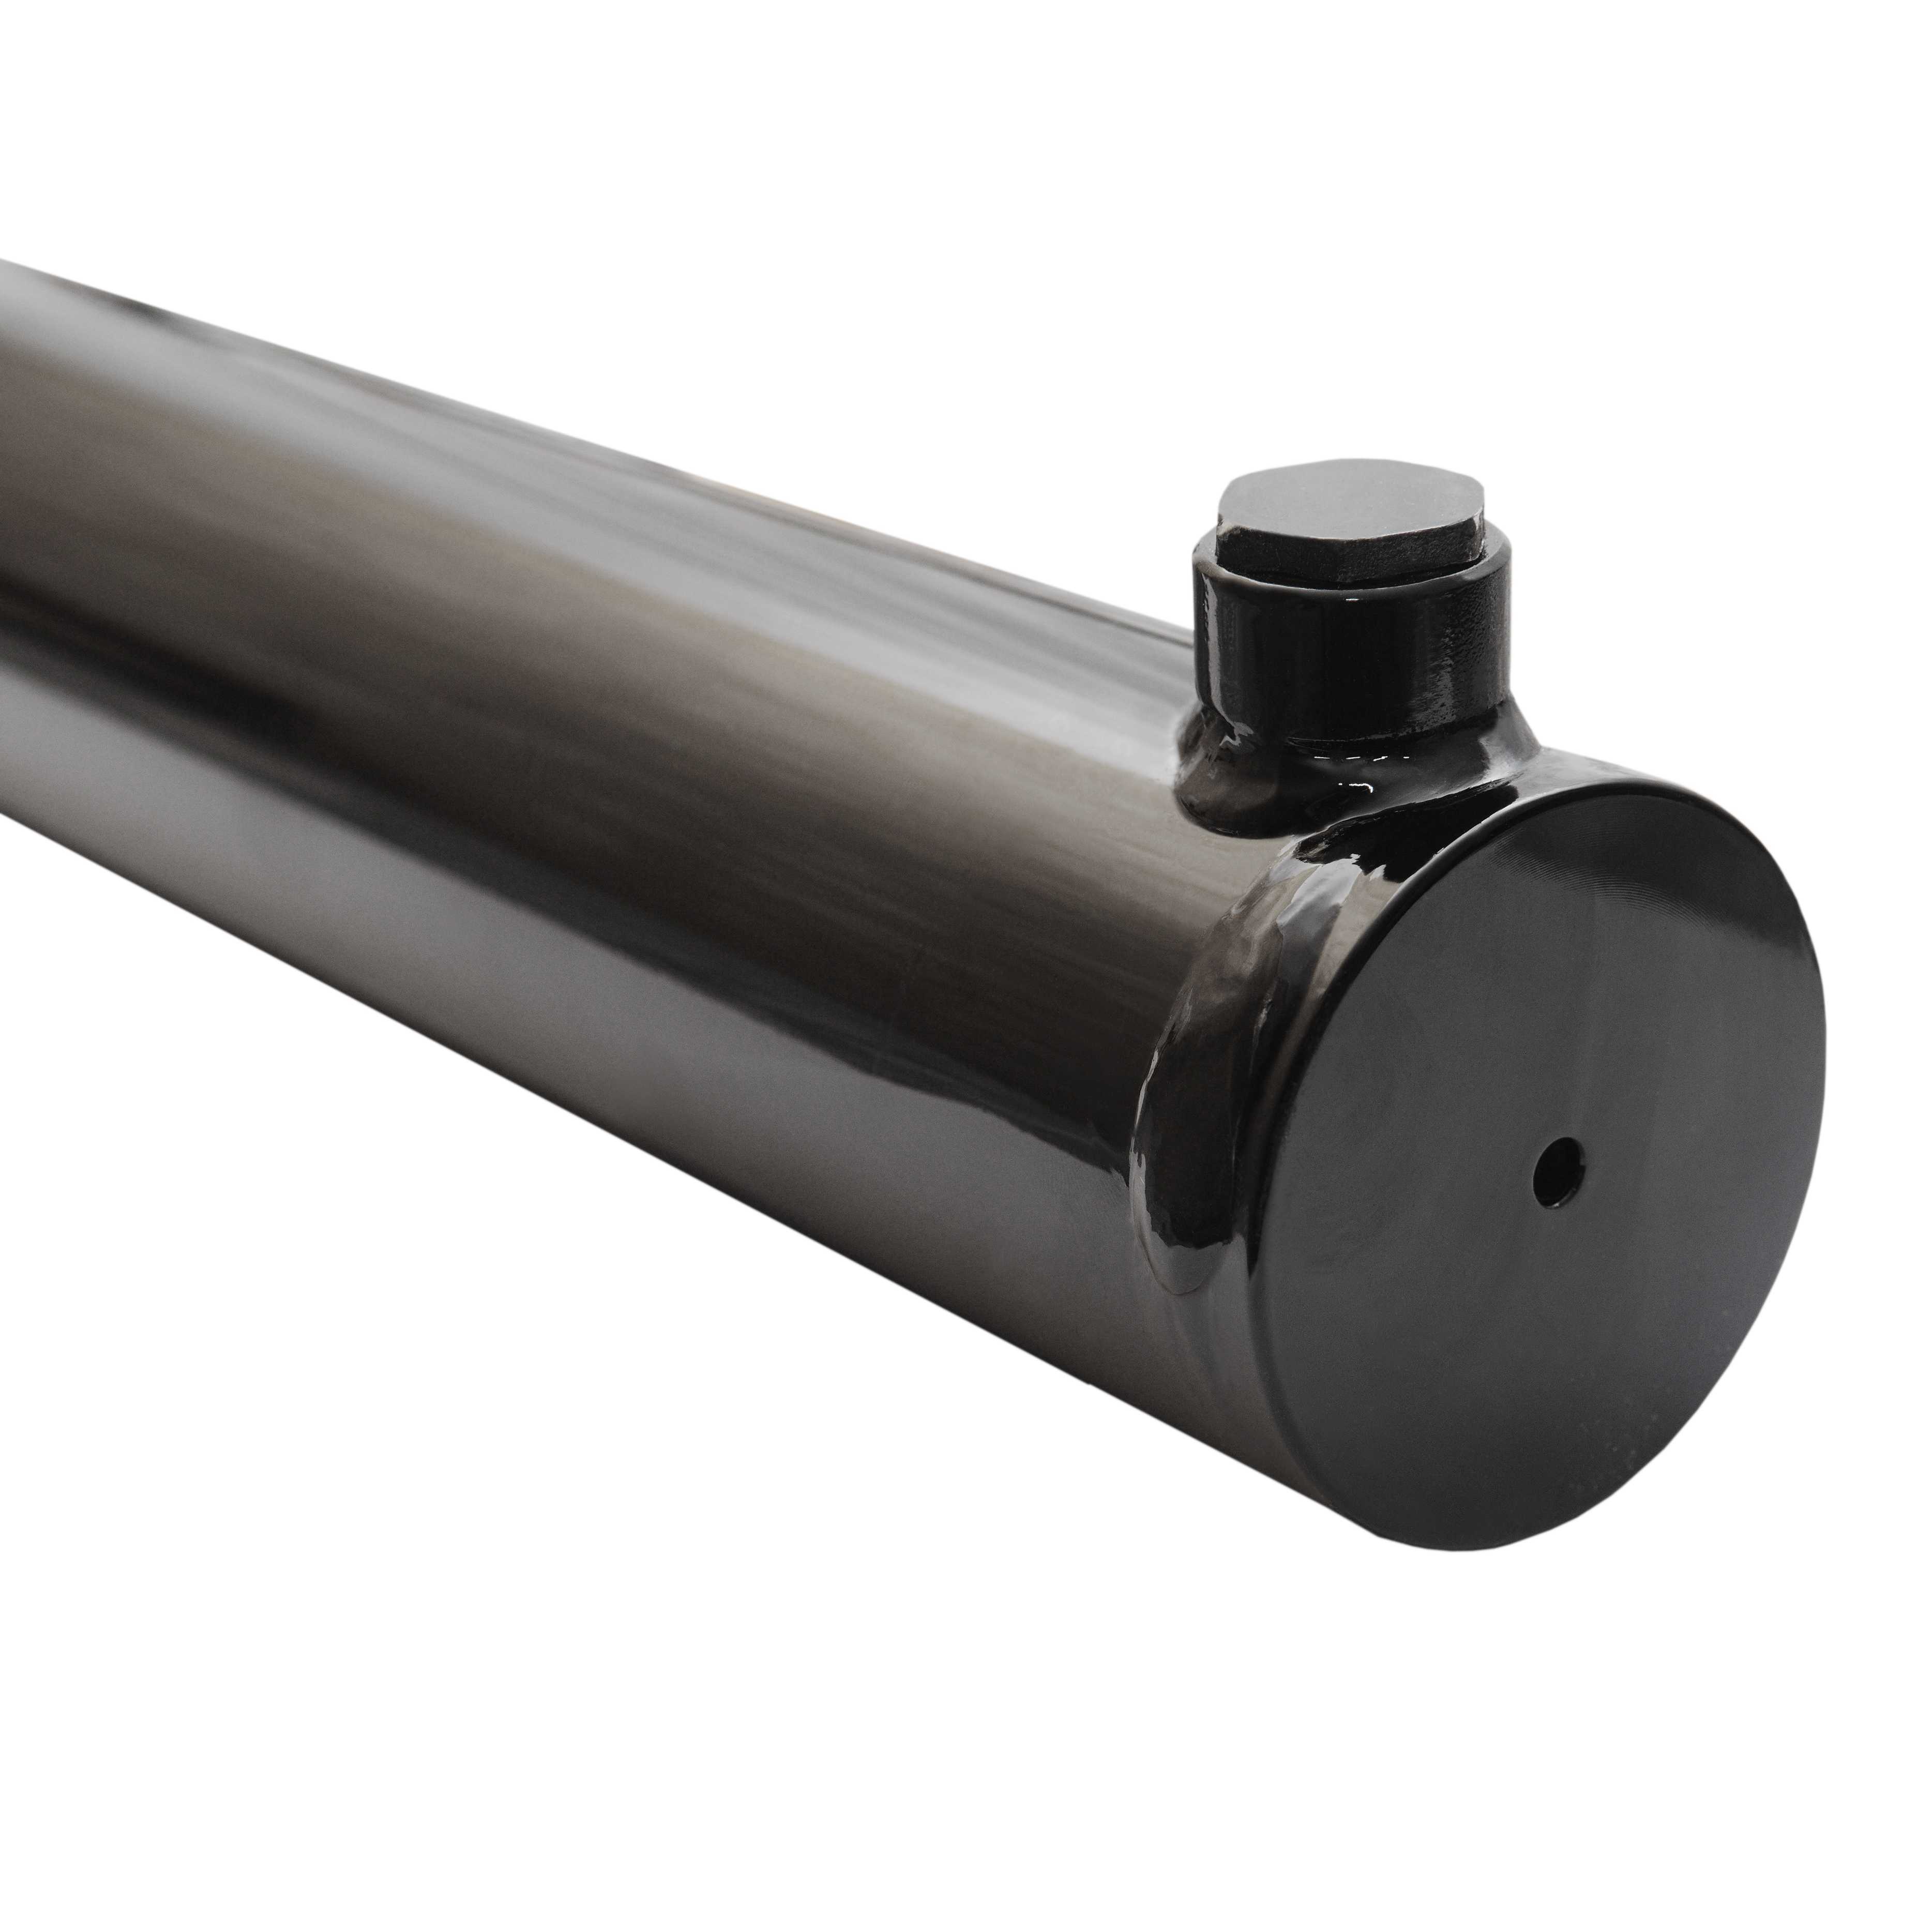 2.5 bore x 15 stroke hydraulic cylinder, welded universal double acting cylinder   Magister Hydraulics